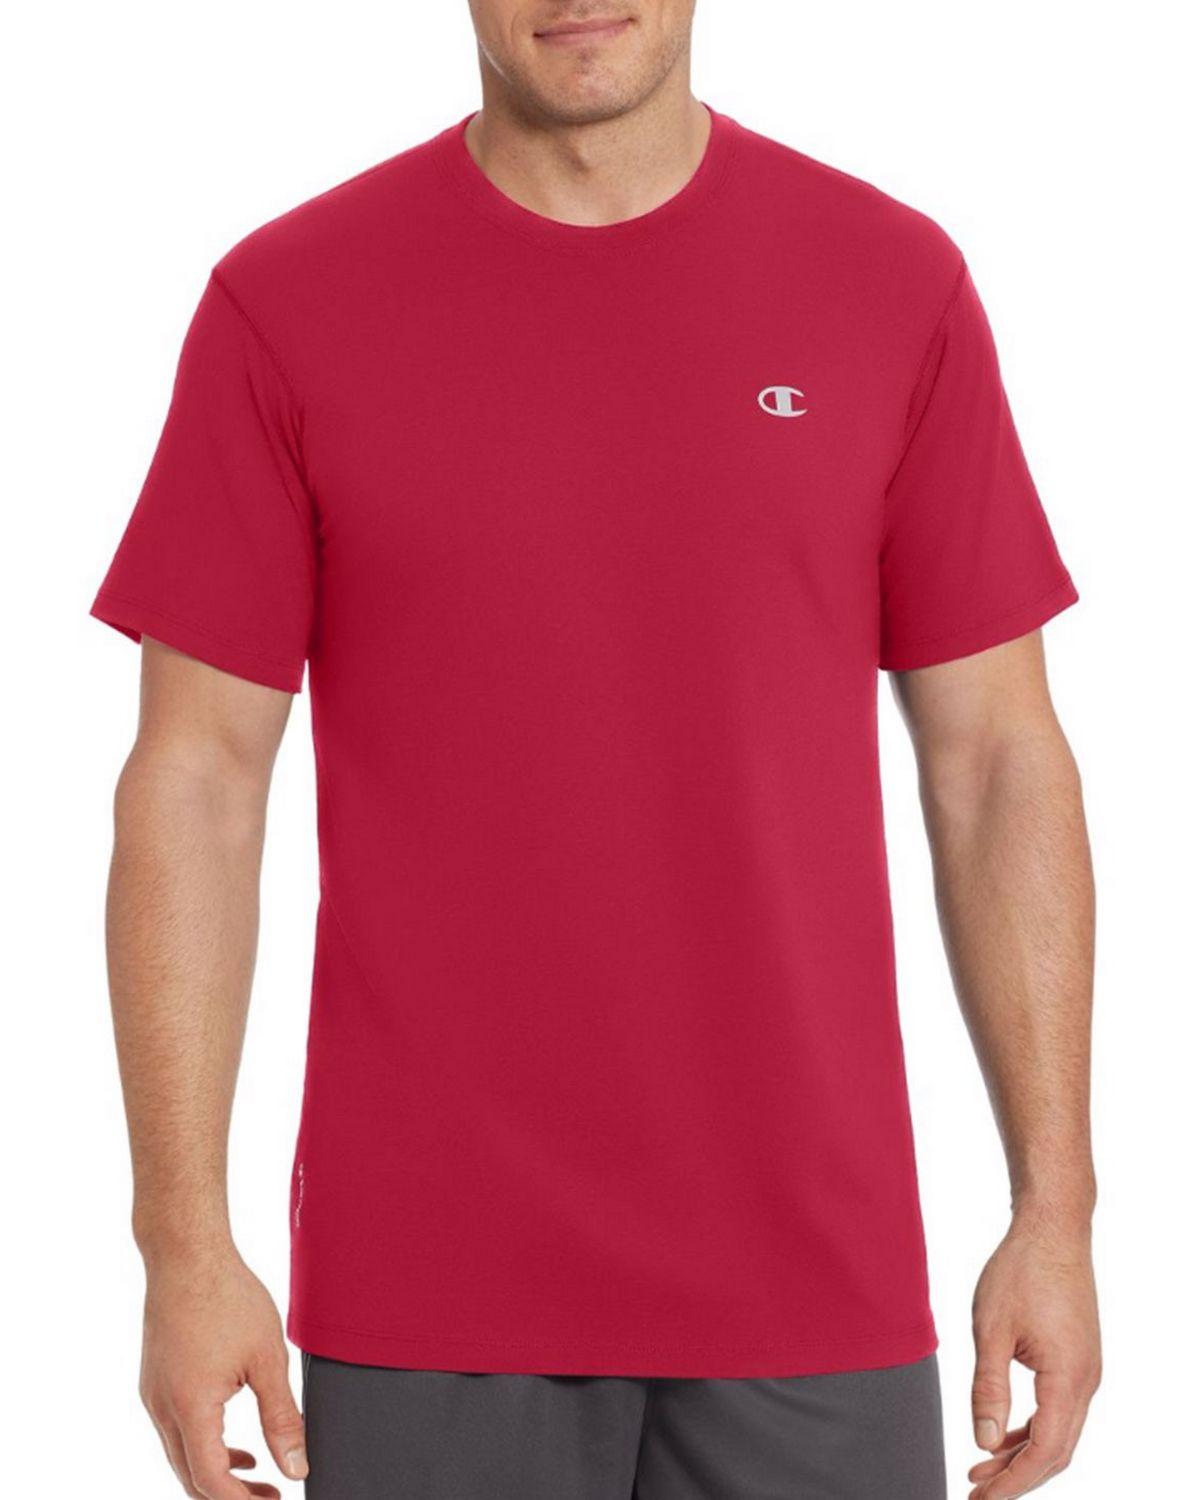 Champion T0351 Vapor Mens Cotton Tee - Scarlet - XL T0351